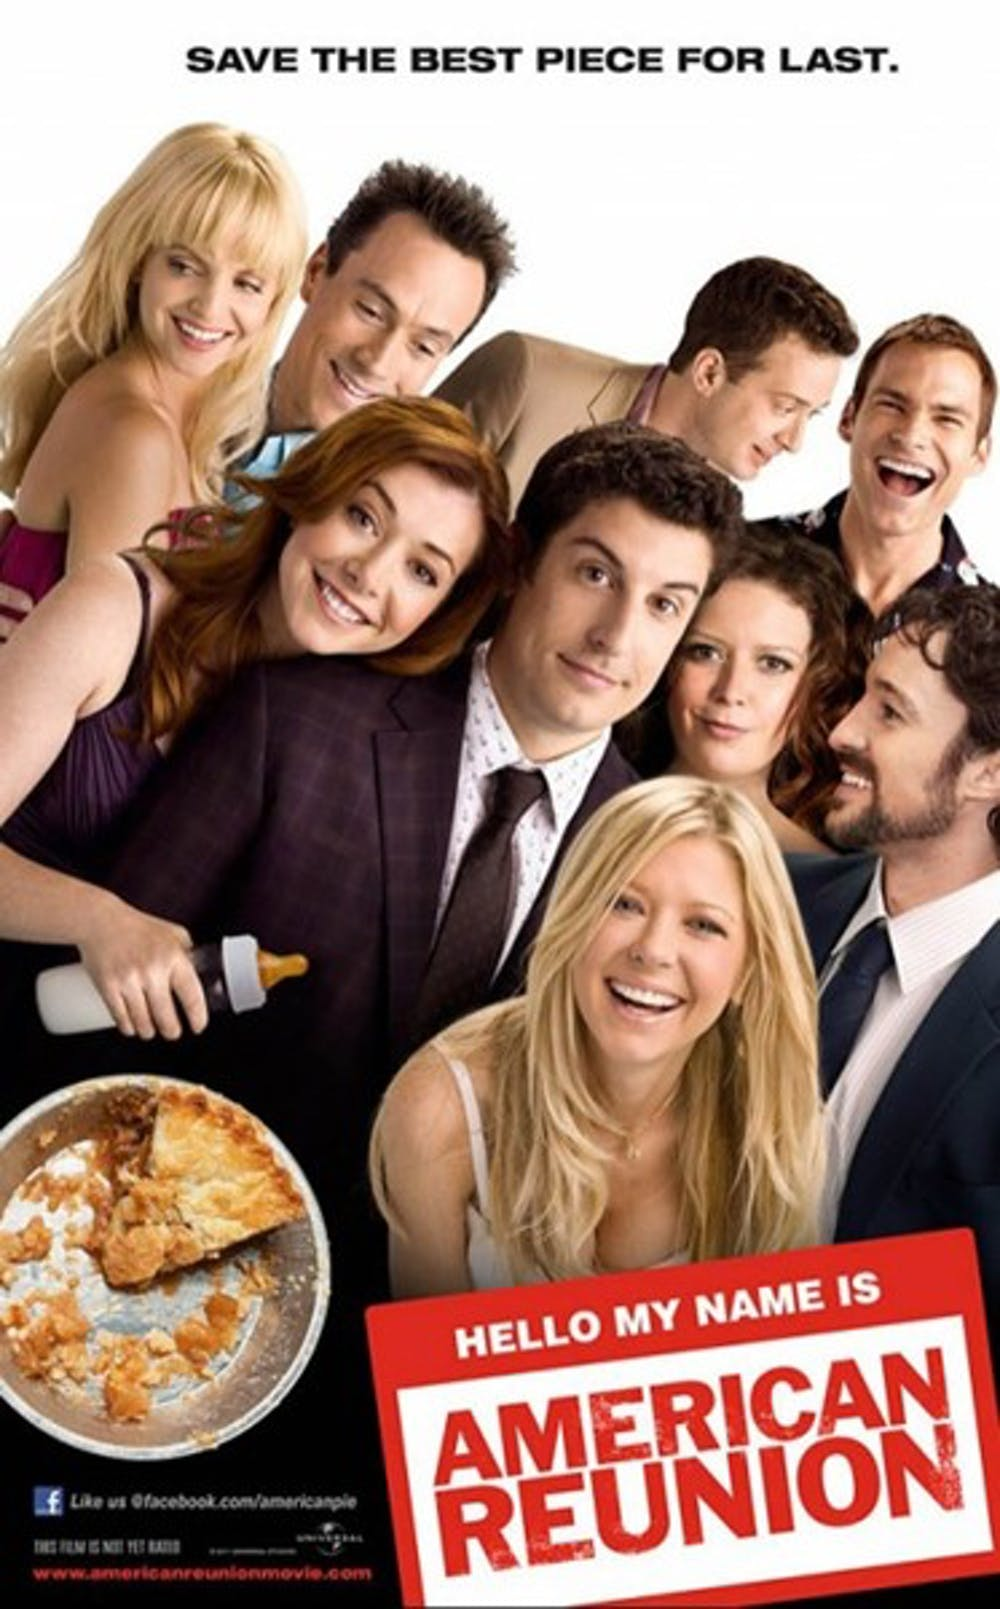 Alyson Hannigan American Pie Hot american reunion' induces outrageous laughs - the state press